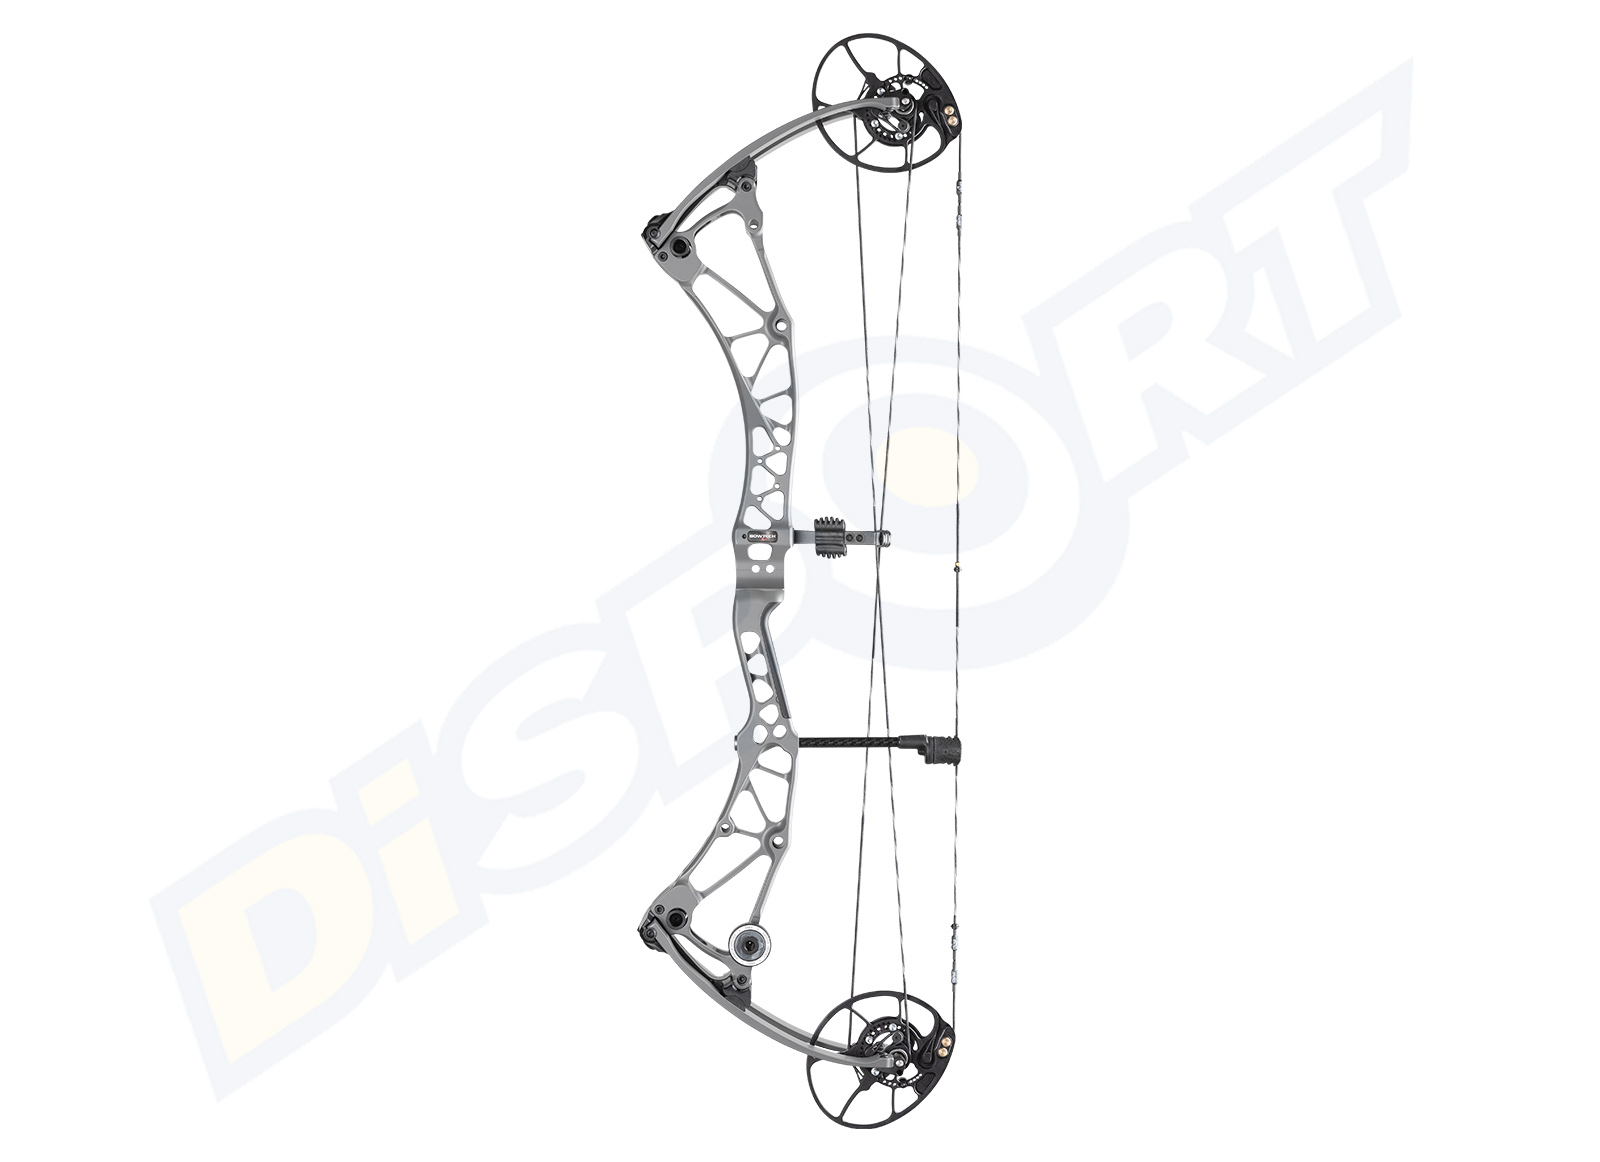 BOWTECH ARCO COMPOUND REVOLT X 2020